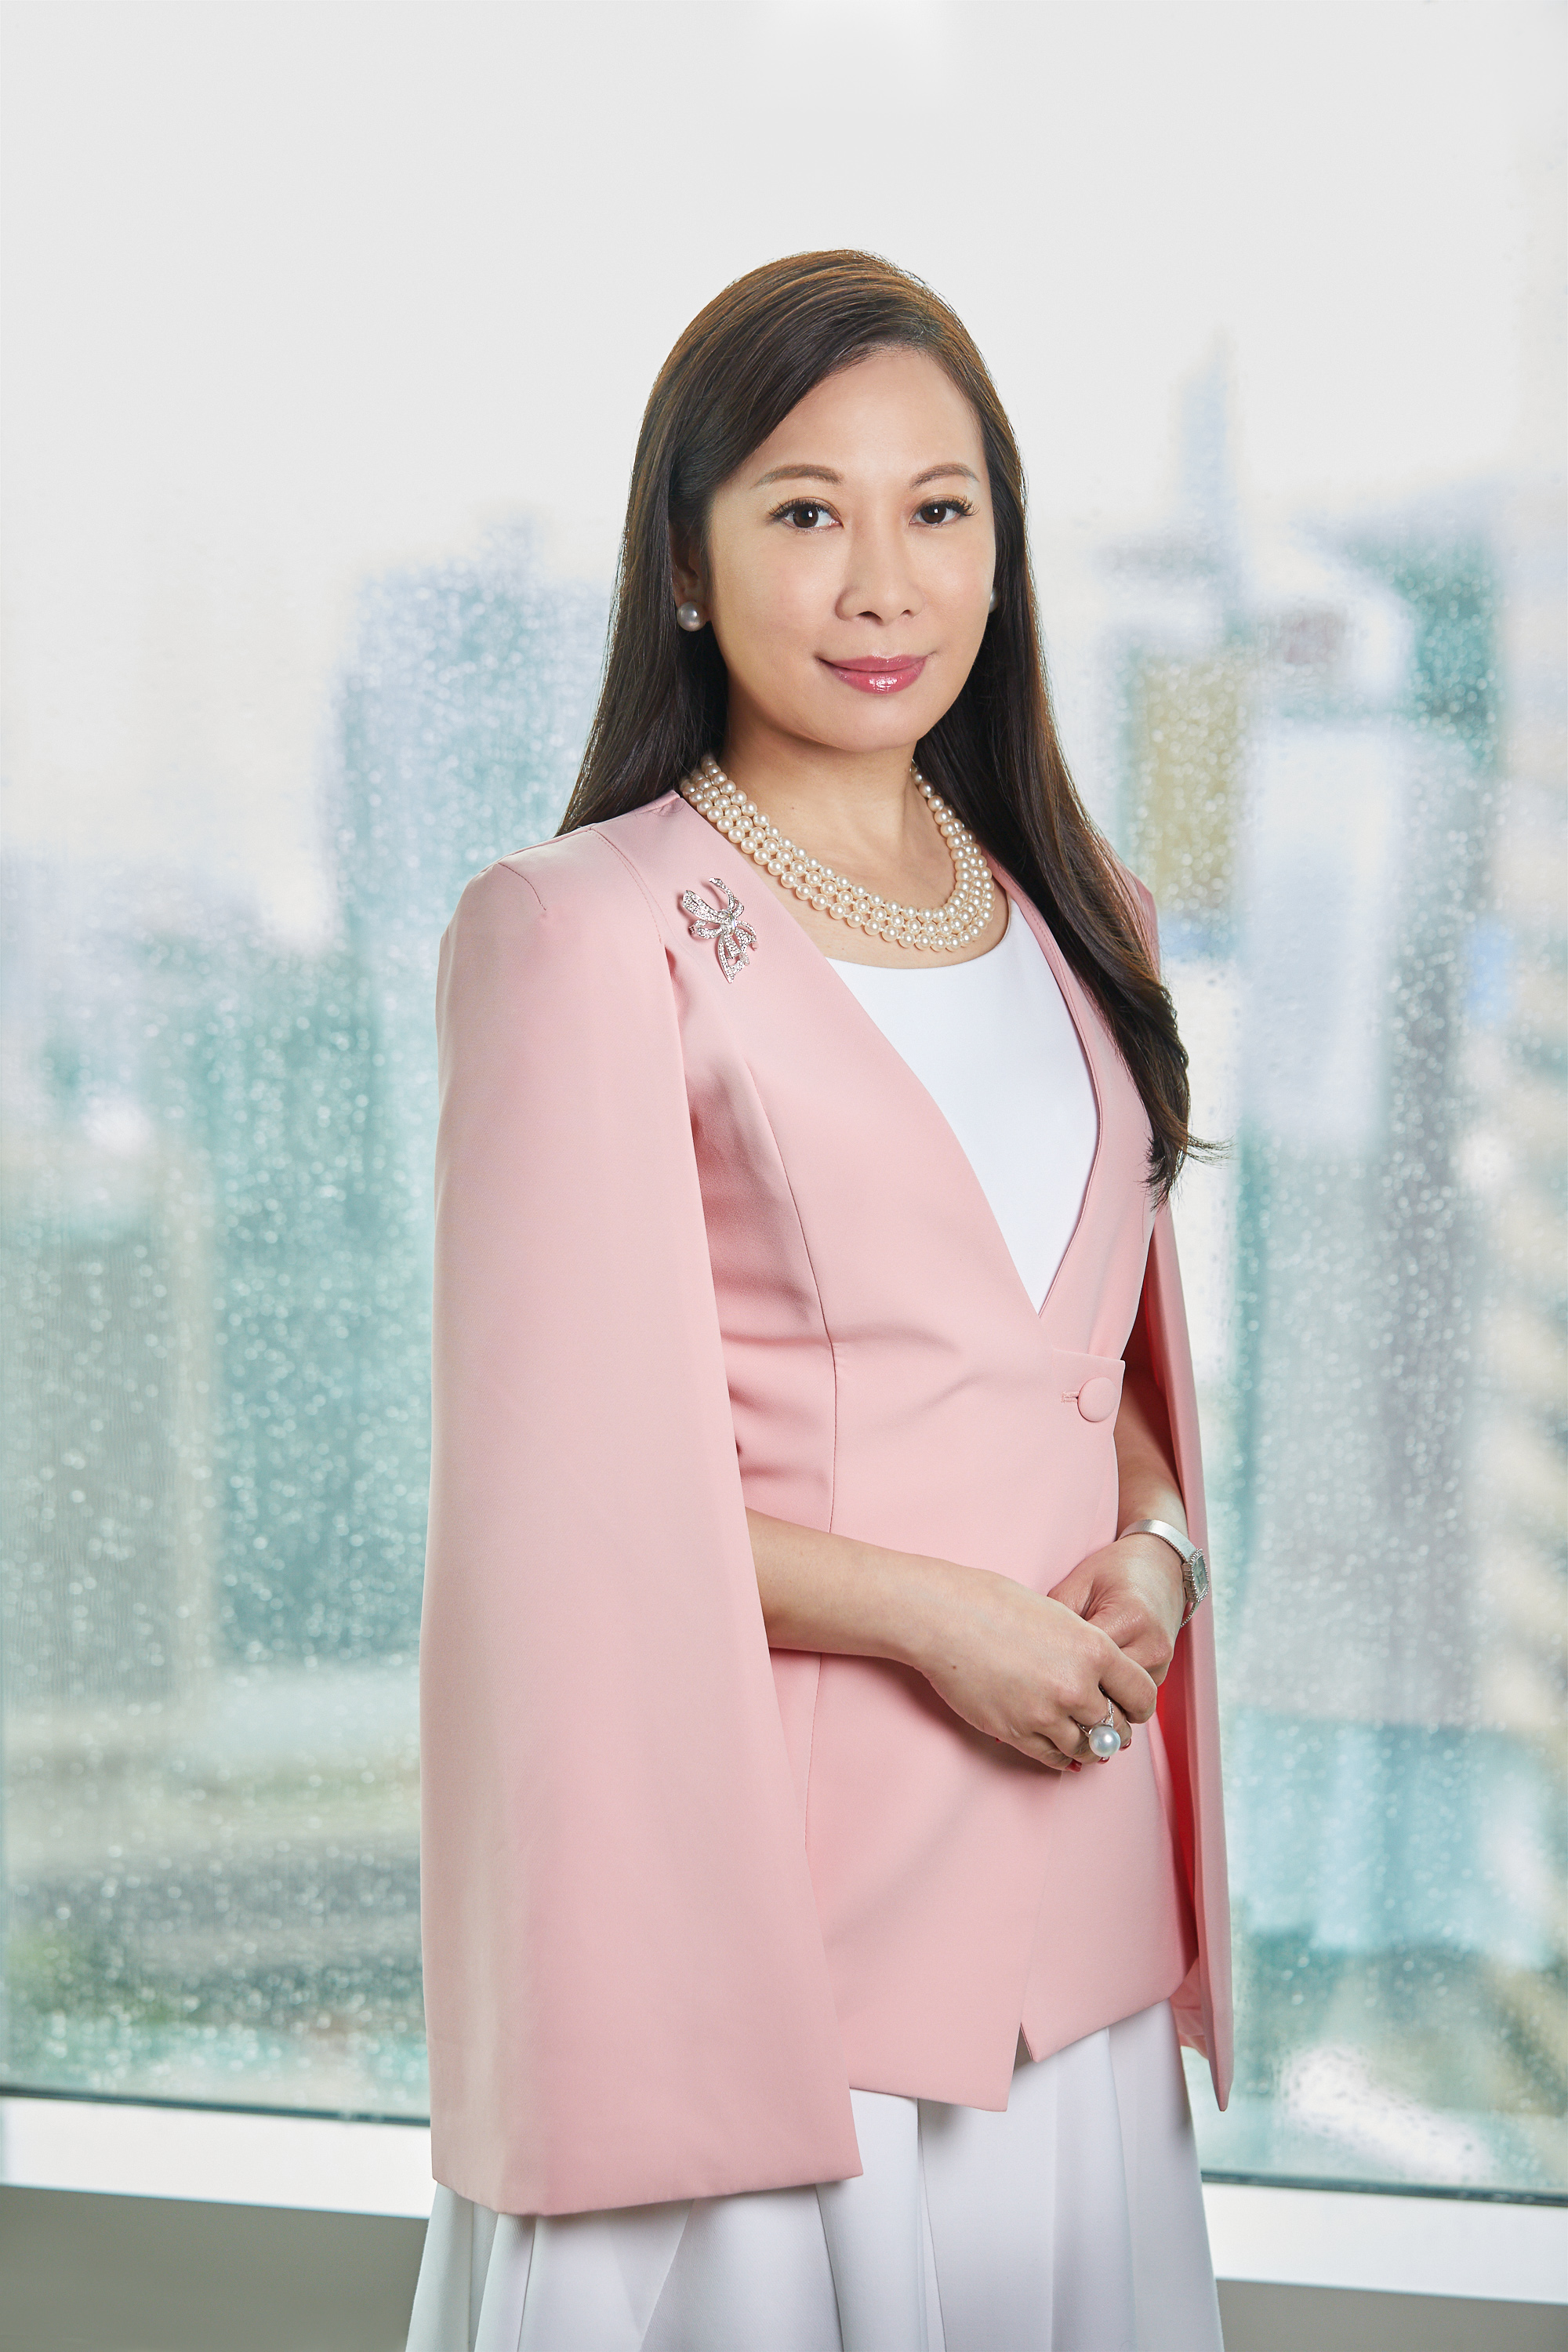 Bank-of-singapore_Potrait_Michael CW Chiu_13.jpg